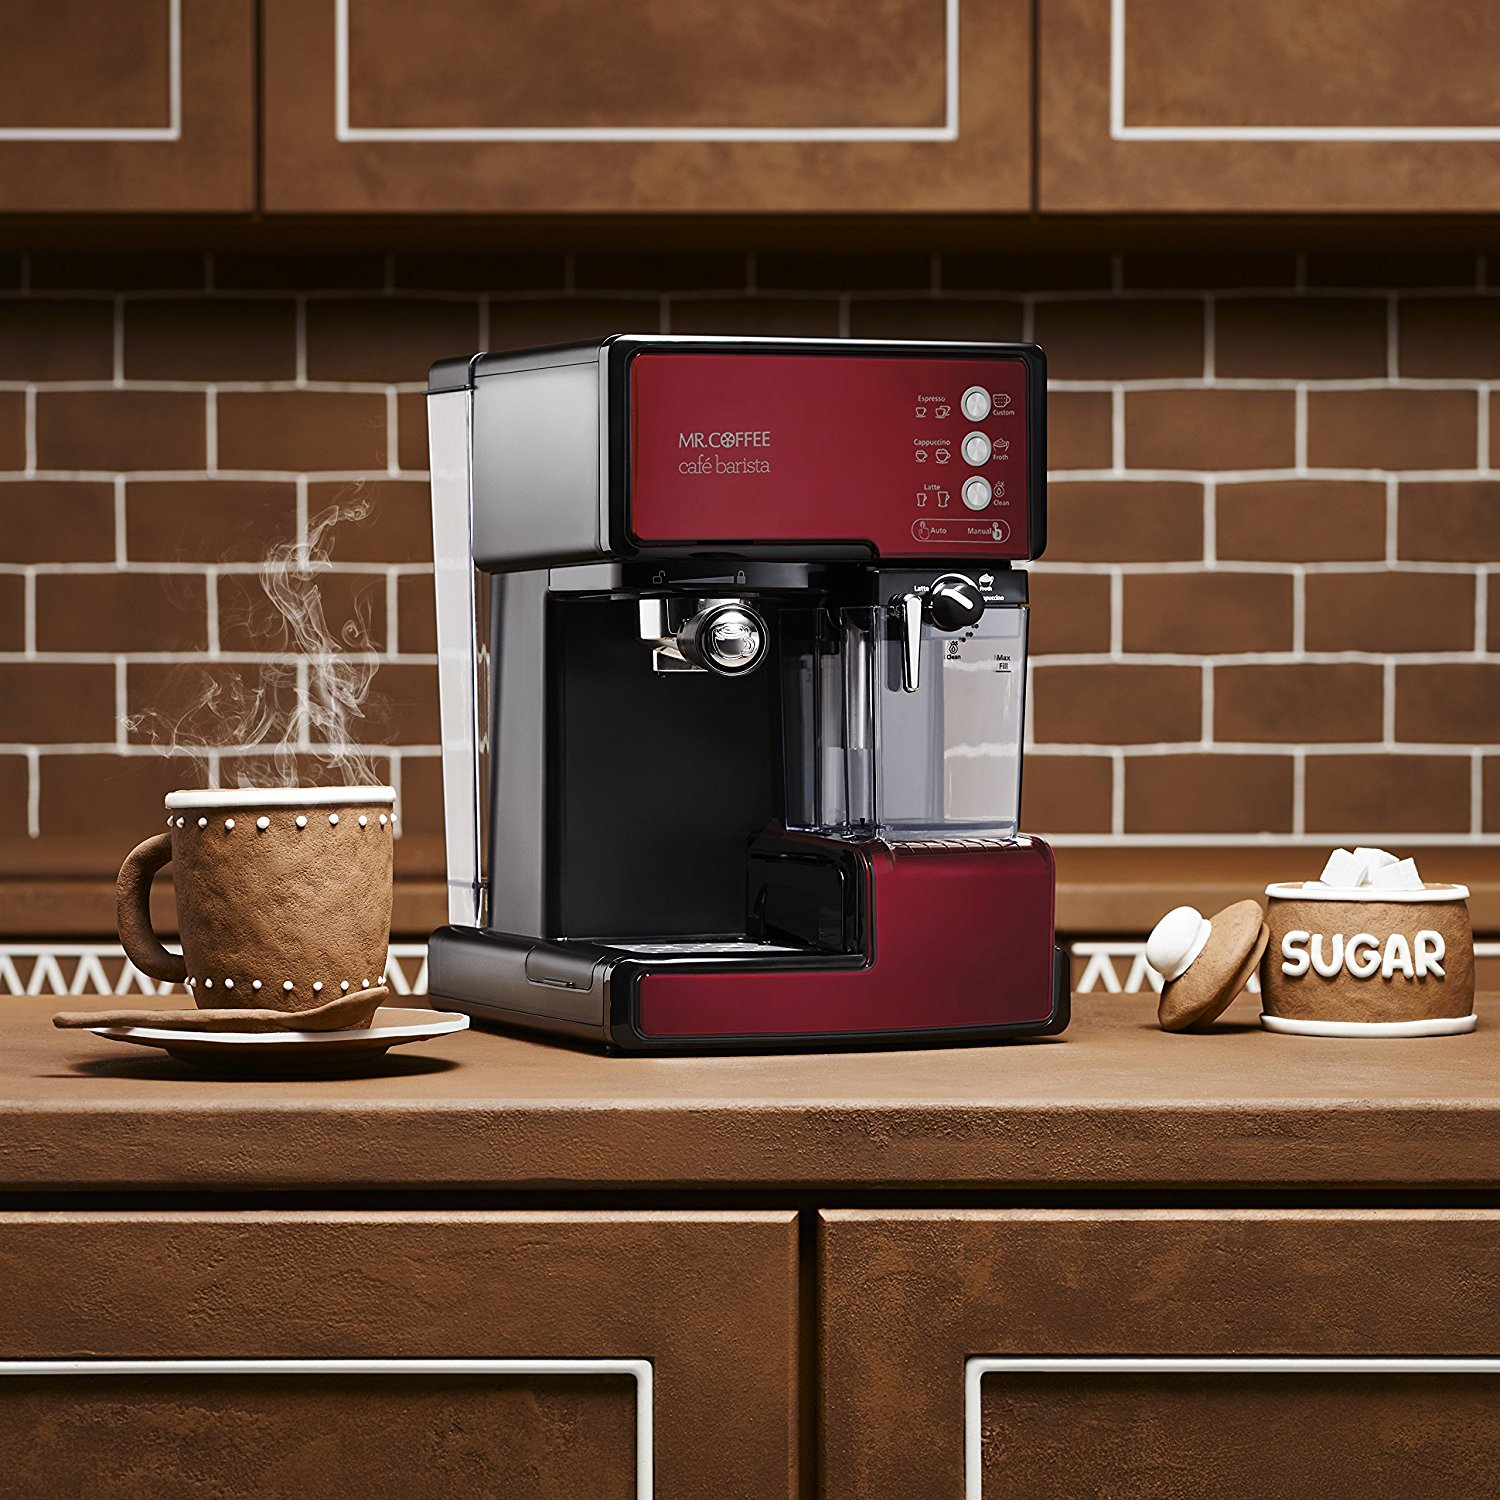 Mr. Coffee Cafe Barista 2 Coffee Maker That Makes Hottest Coffee